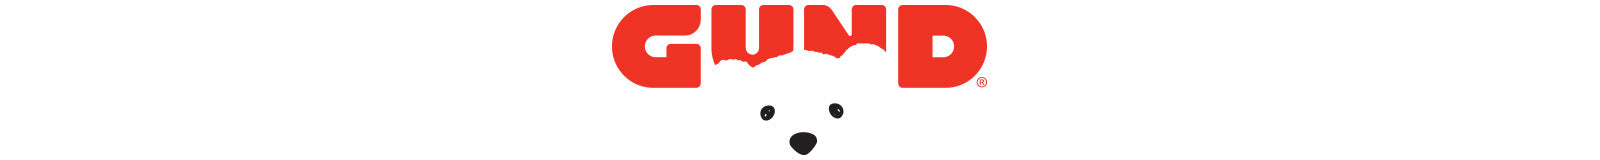 Gund Bear Signature logo